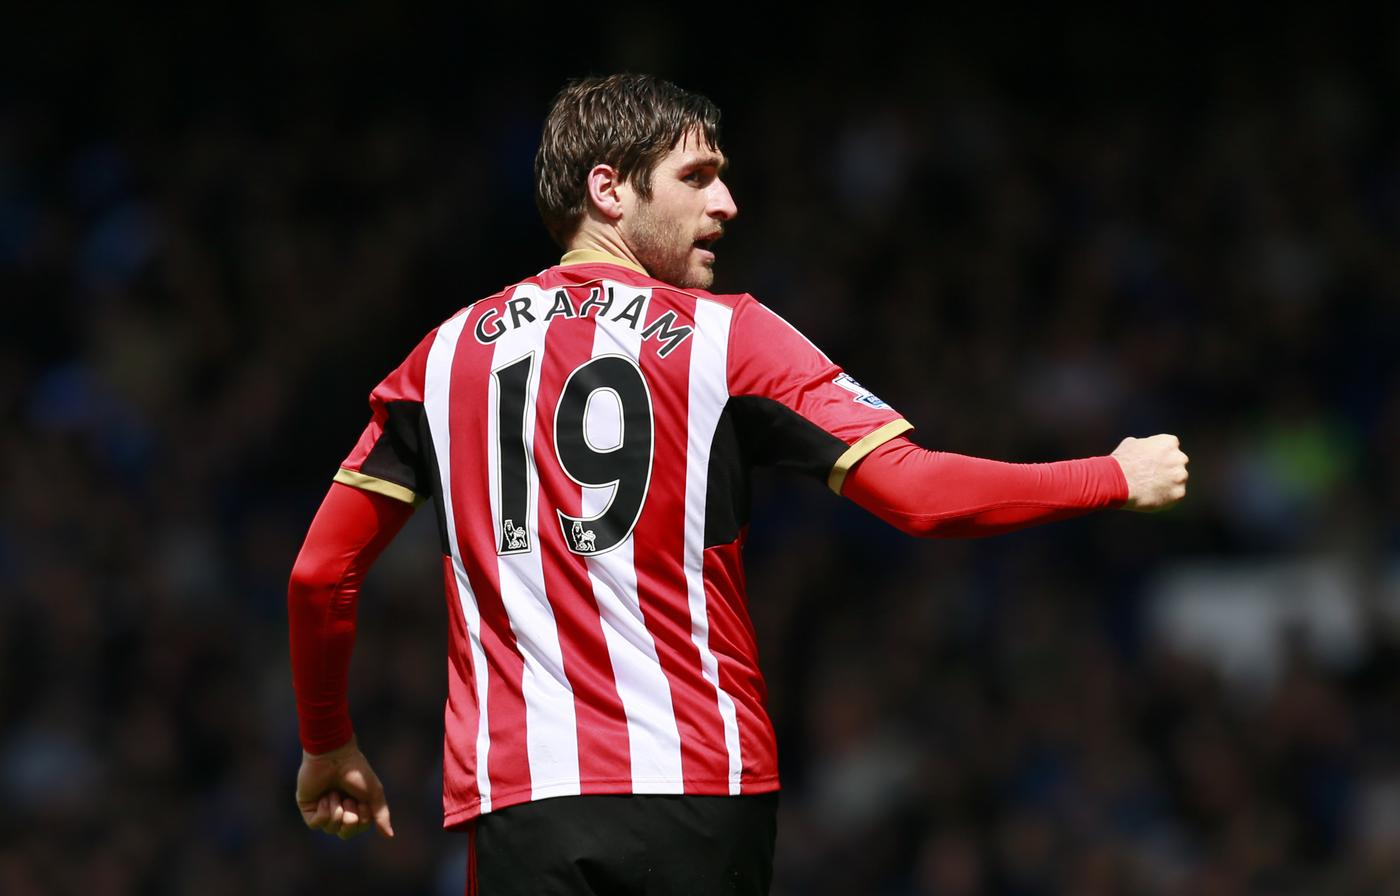 Could Danny Graham have what it takes to shine with Sunderland?